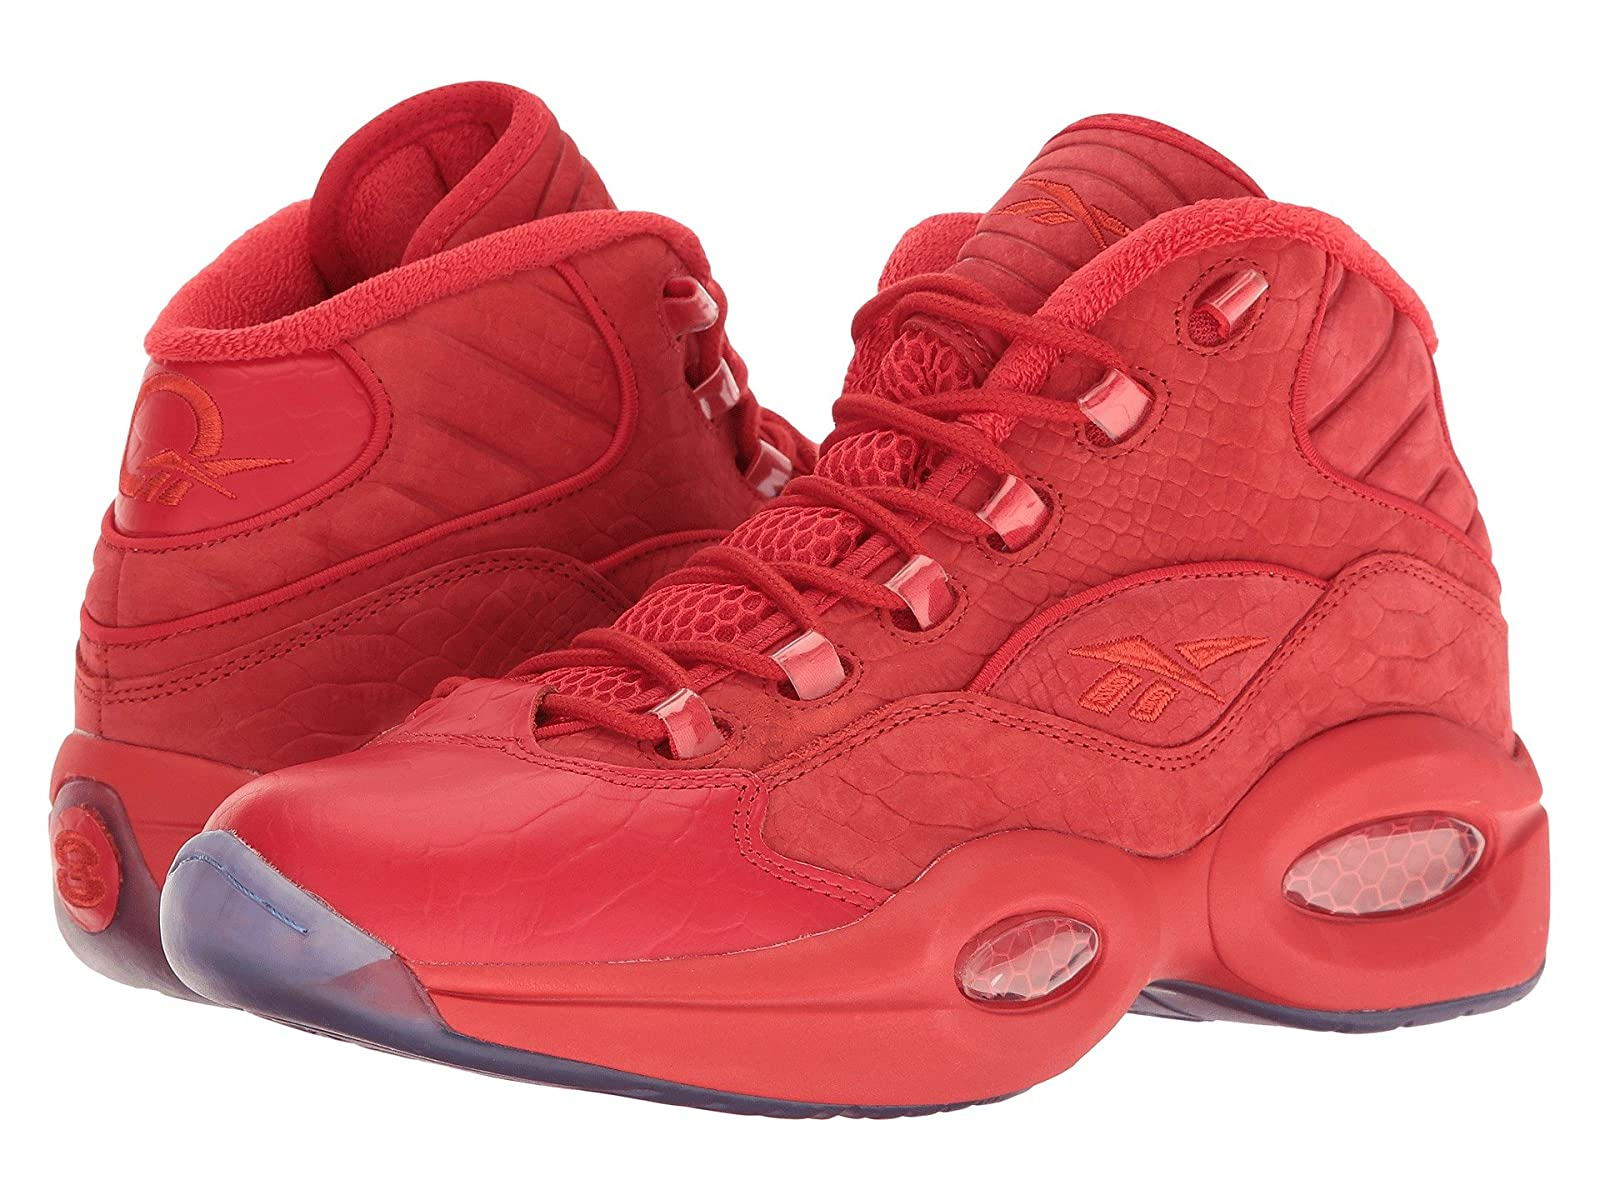 Reebok Lifestyle Question Mid Teyana TCheap and distinctive eye-catching shoes